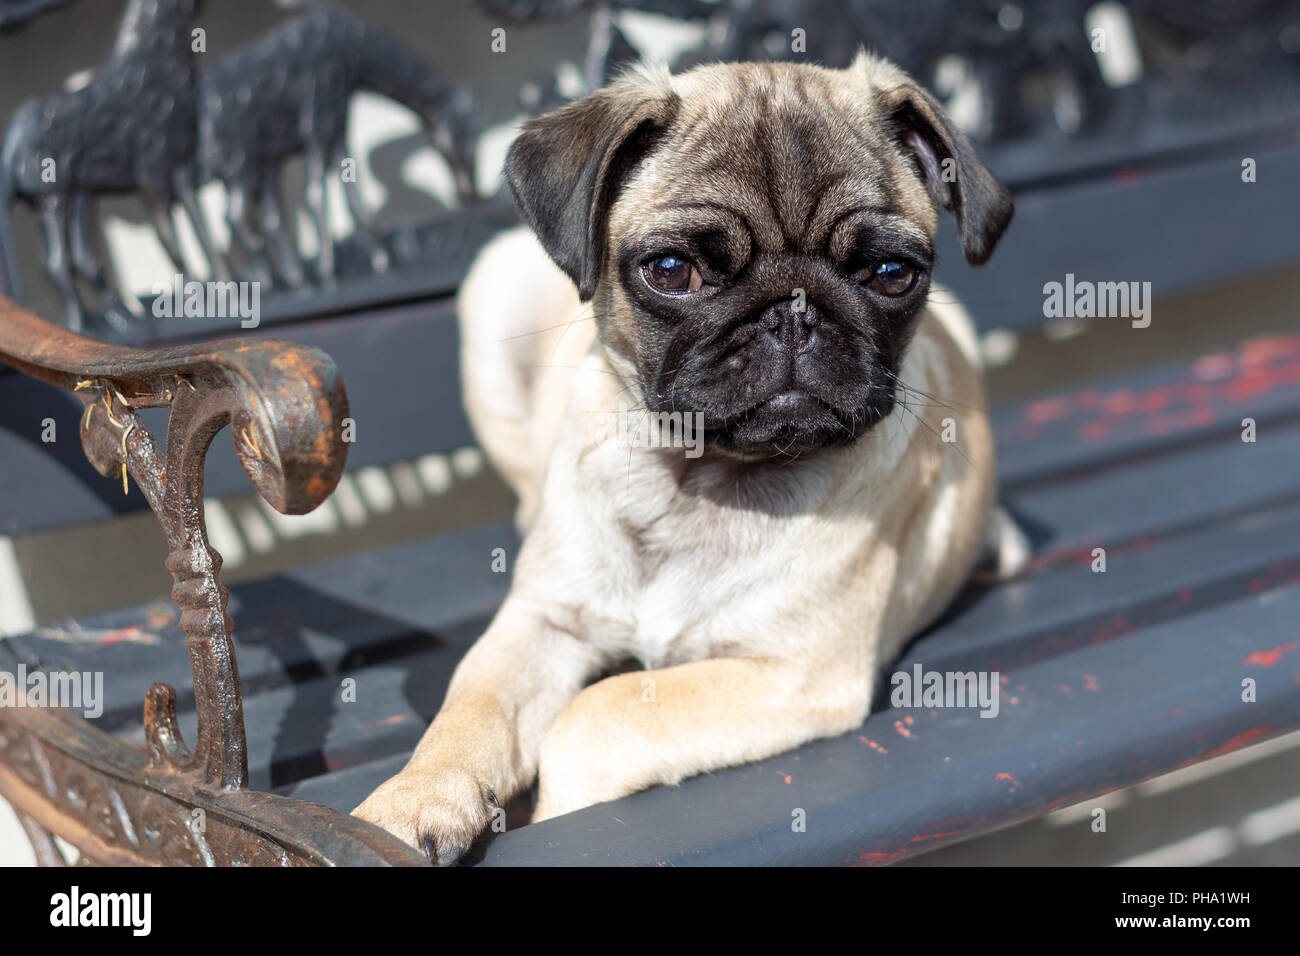 Cute Pug Puppy on a Bench - Stock Image